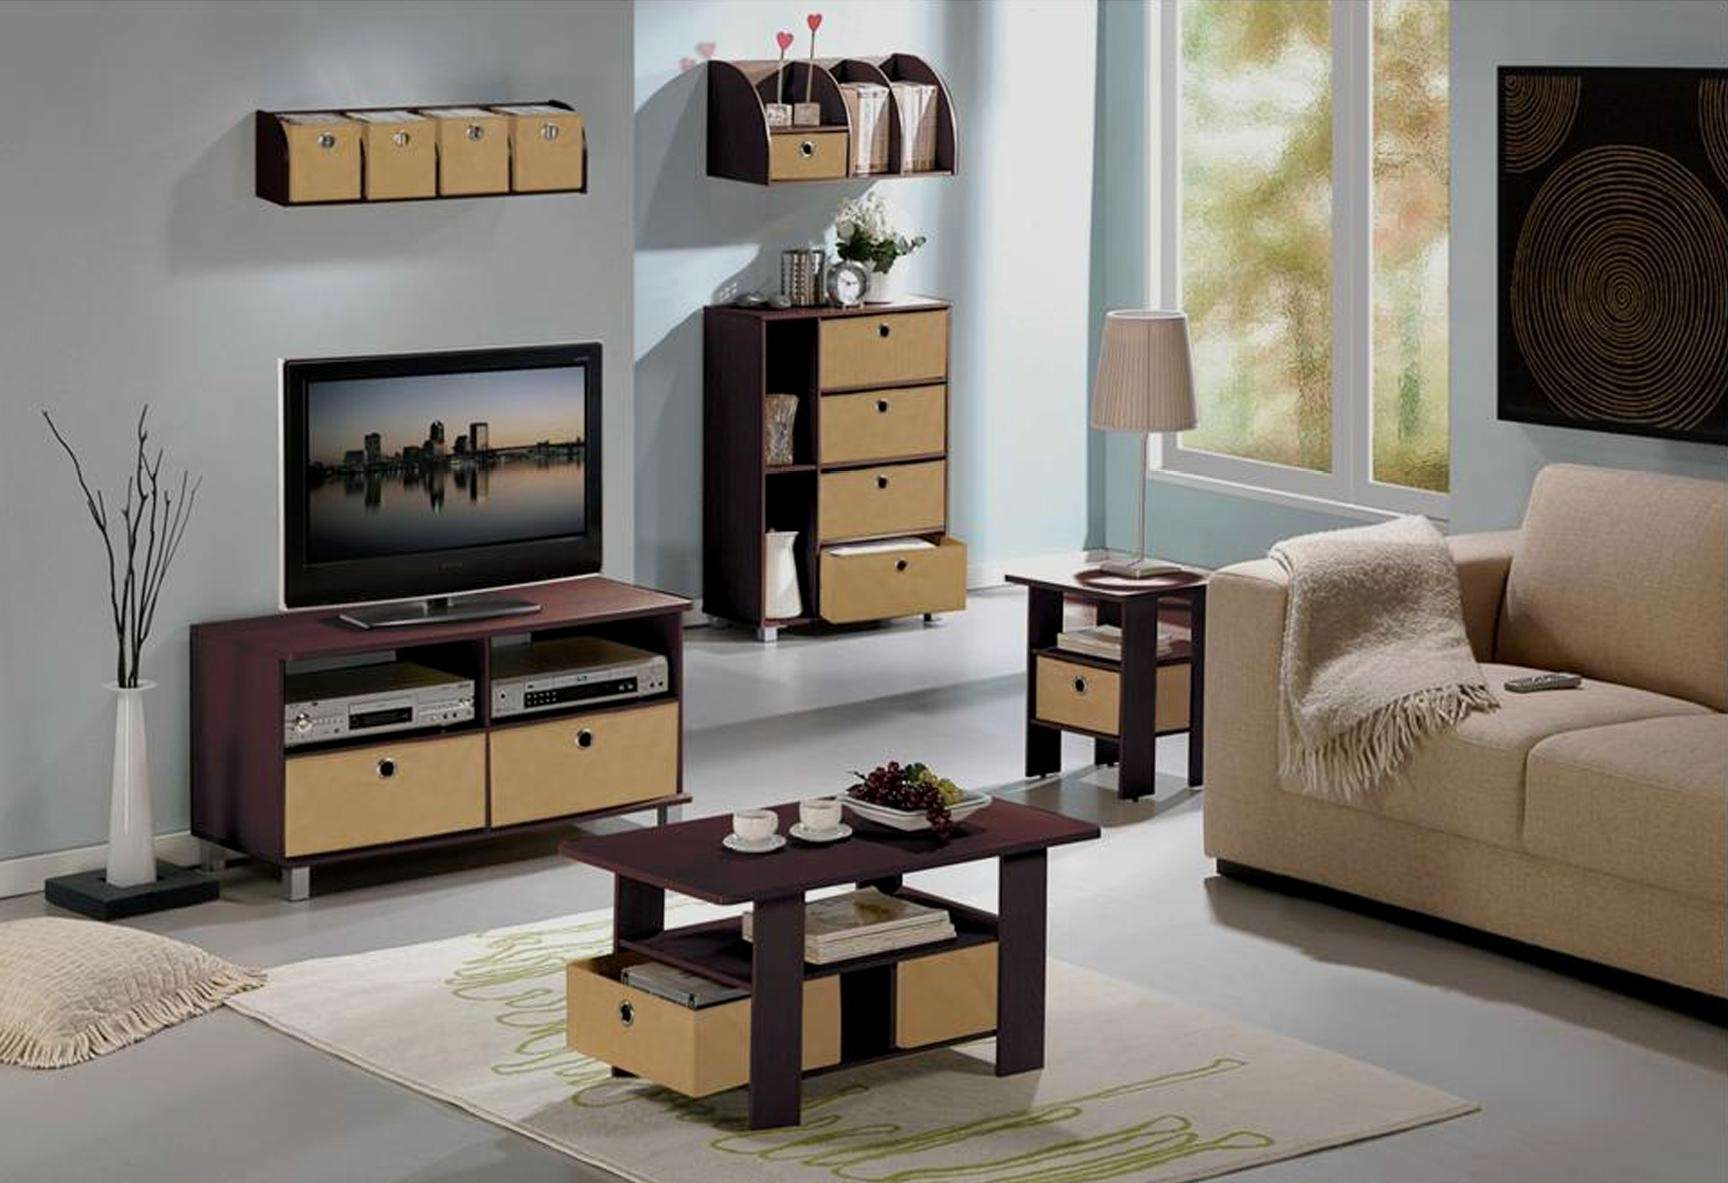 35 Best Of Coffee Table And Tv Stand Set – Home Furniture Ideas With Regard To 2018 Coffee Table And Tv Unit Sets (Gallery 14 of 20)